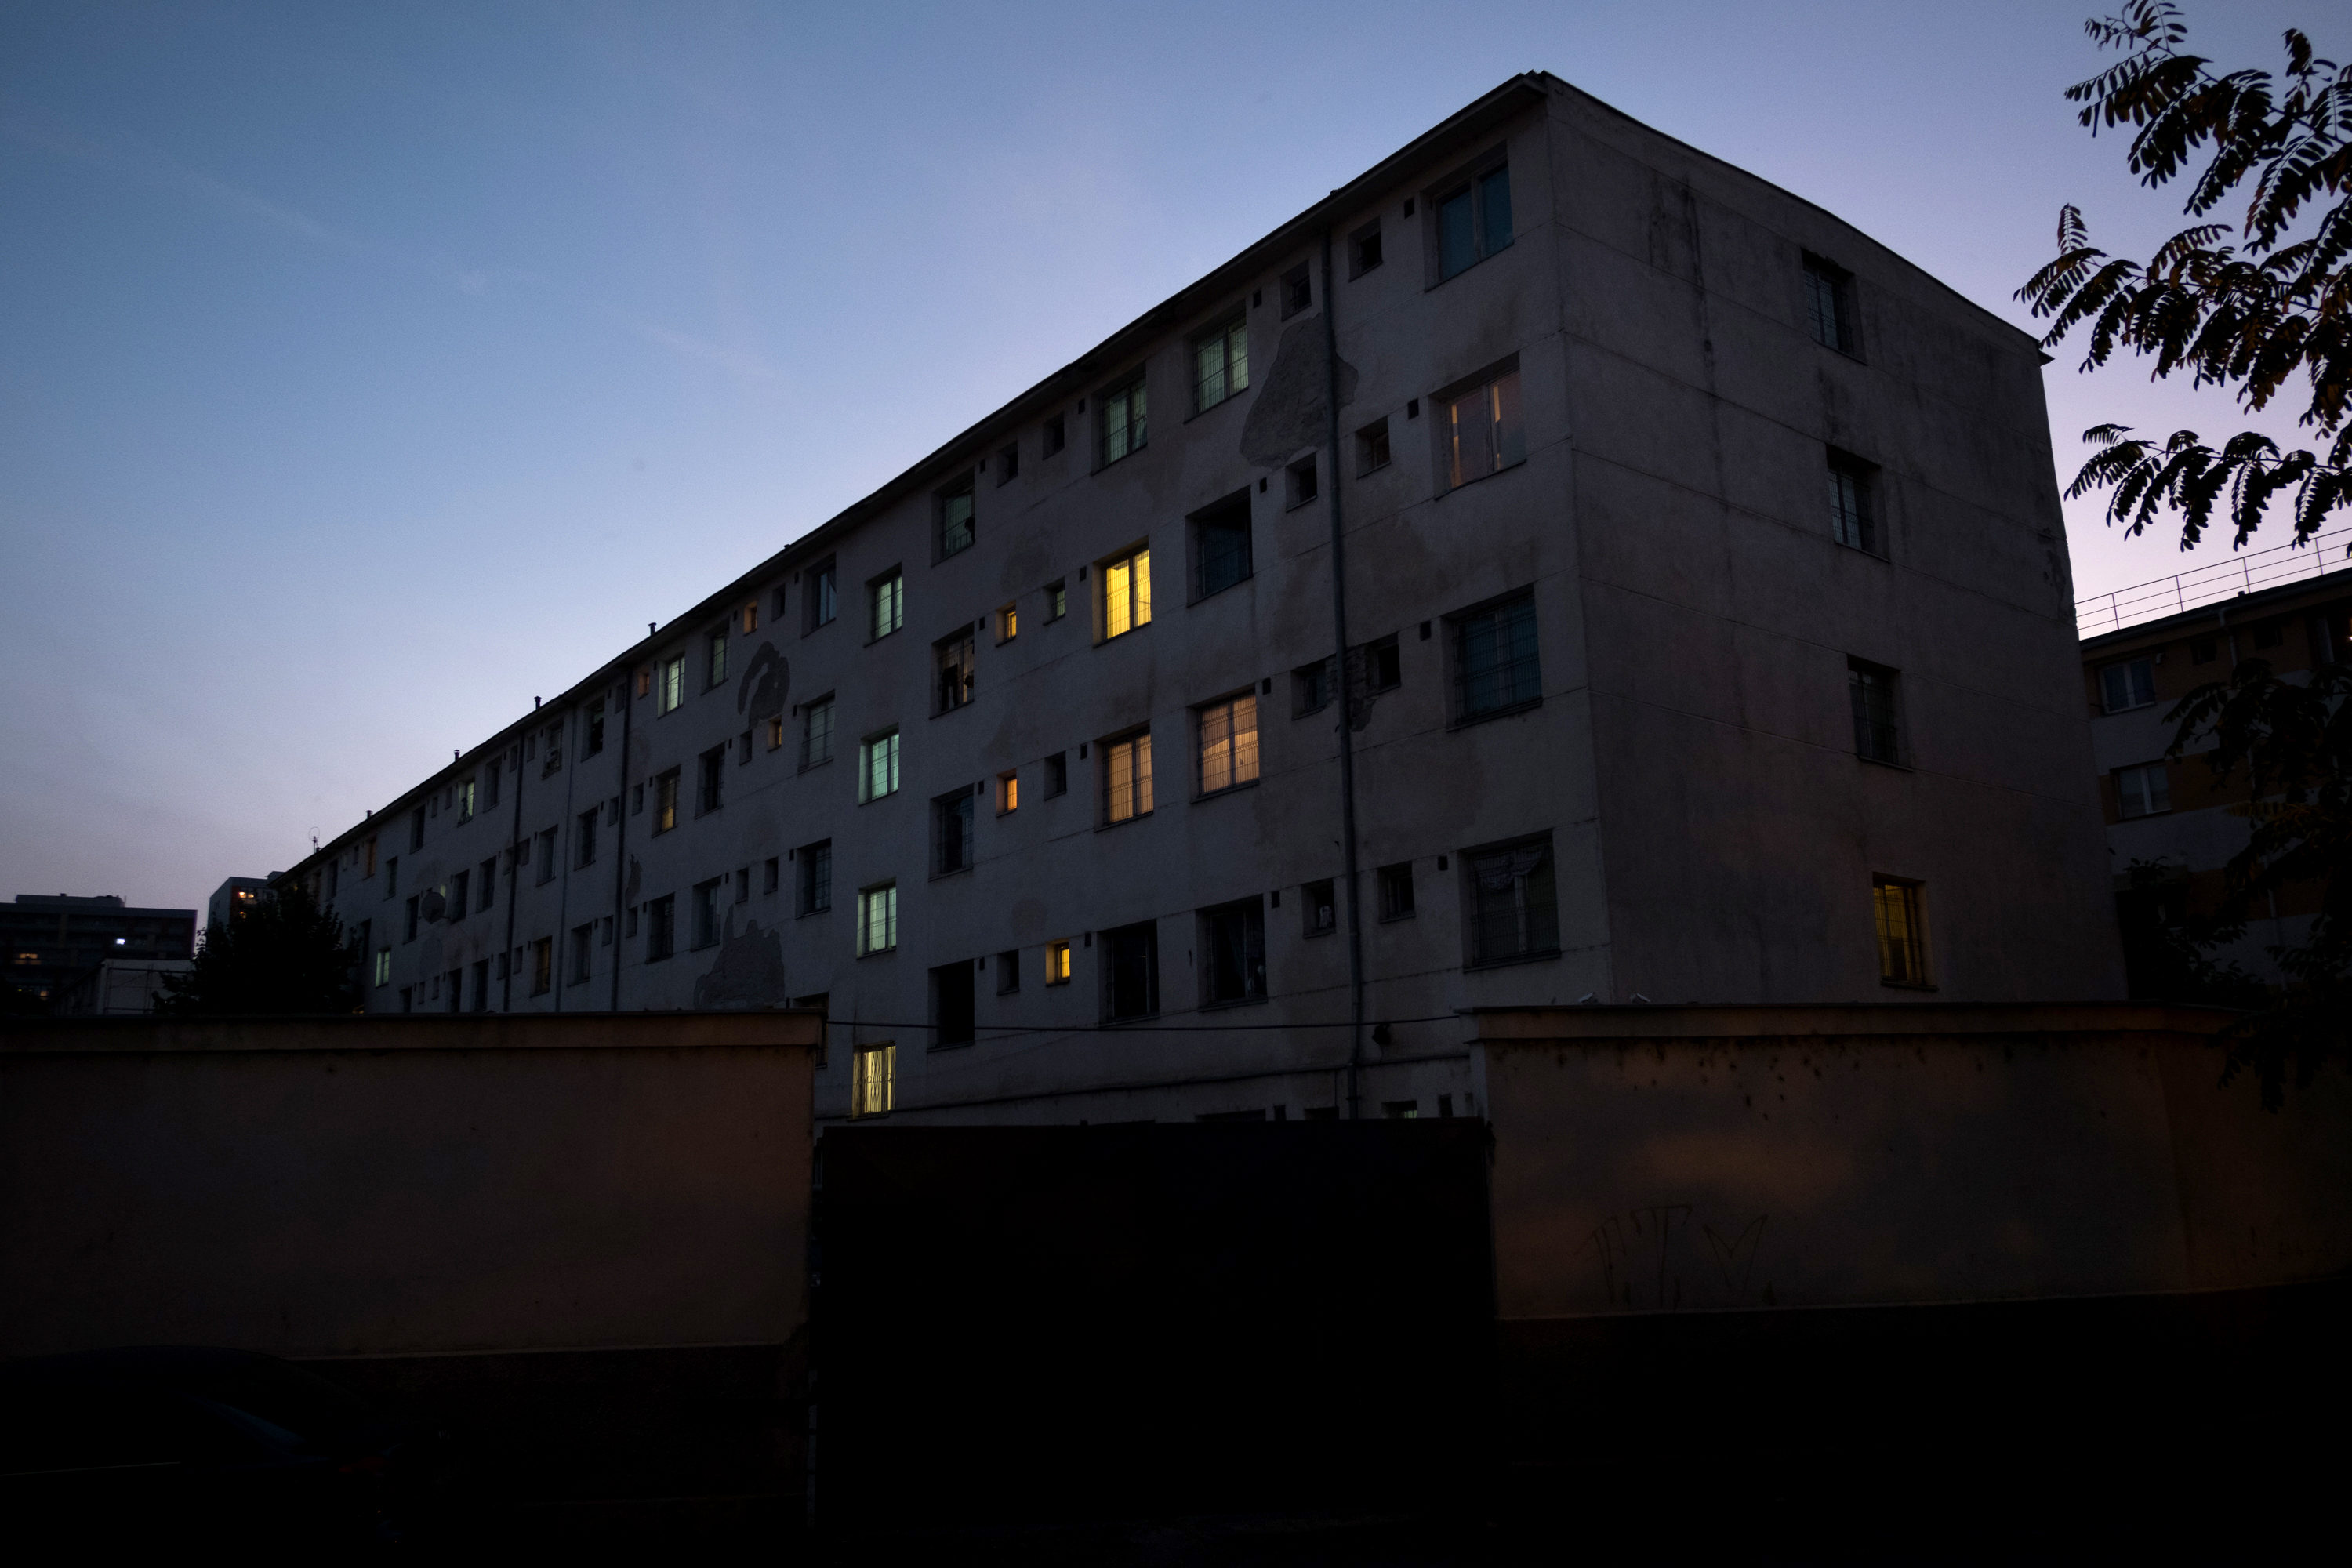 A dormitory that houses over 300 asylum-seekers in Bucharest, Romania.